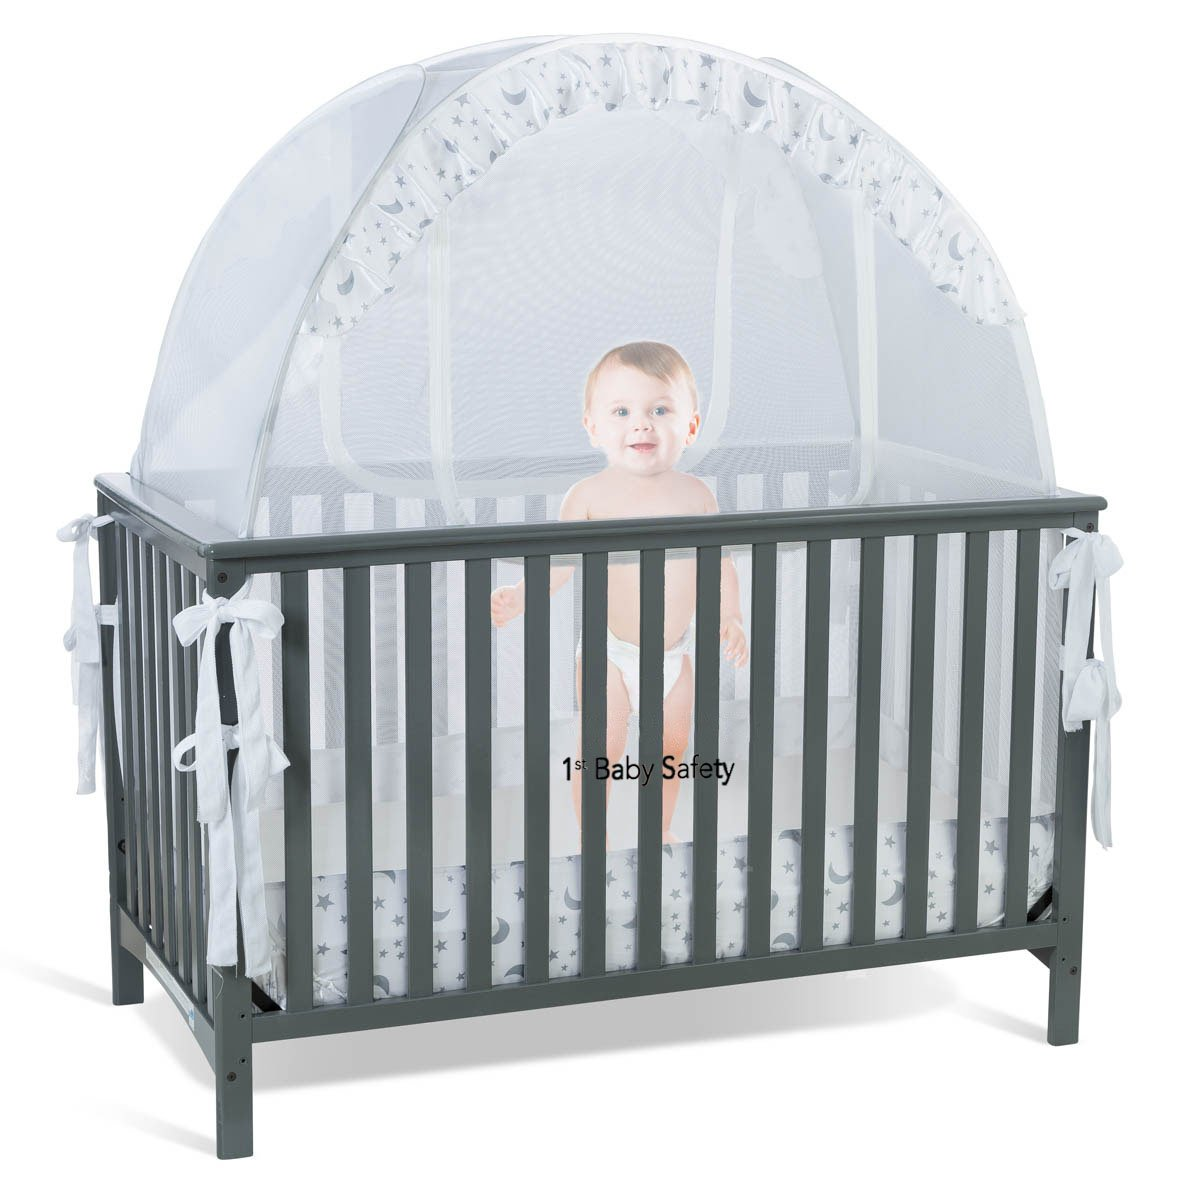 Baby cribs amazon - Amazon Com Baby Crib Tent Safety Net Pop Up Canopy Cover Never Recalled Baby